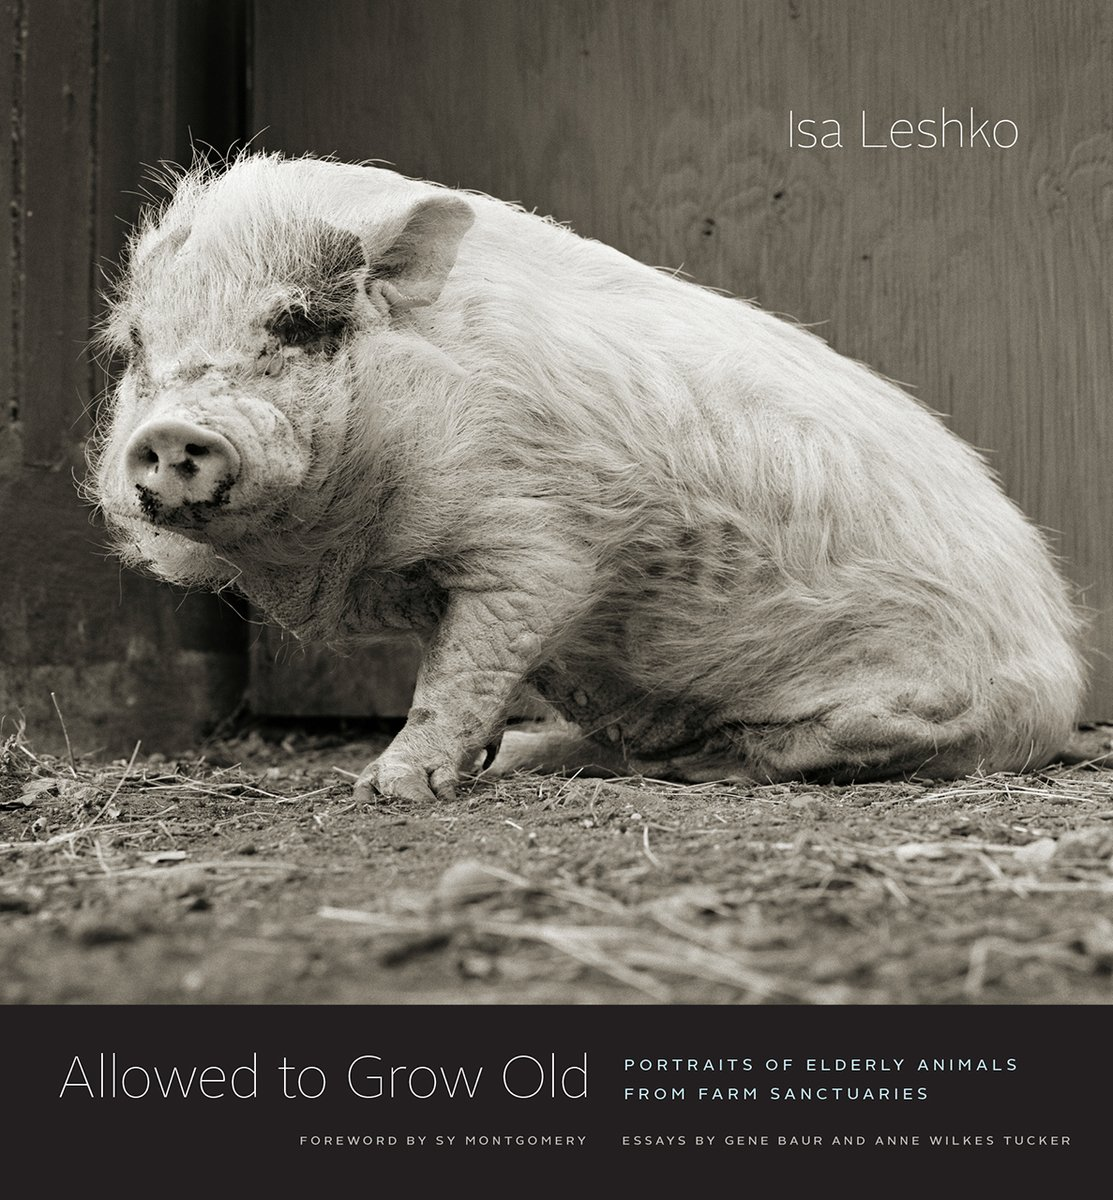 We never stop to think about it, but the typical images we see of cows, chickens, pigs, and the like are of young animals. What would we see if they were allowed to grow old? @IsaLeshko shows us, brilliantly, with this collection of portraits. #NationalPhotographyMonthpic.twitter.com/JgRTue20L0